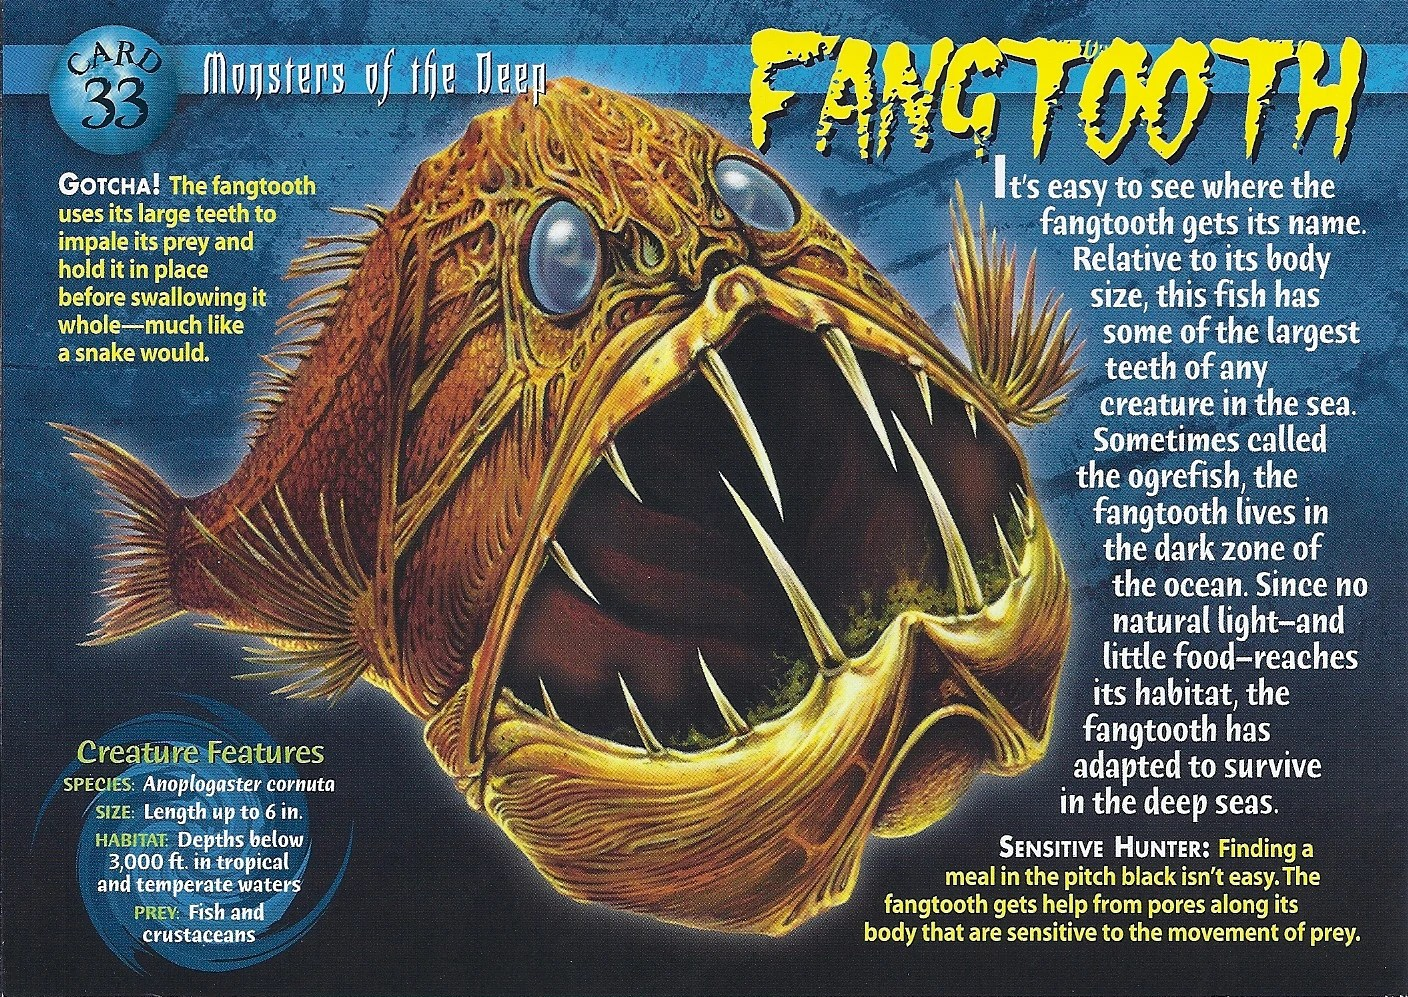 Fangtooth Wierd Nwild Creatures Wiki FANDOM Powered